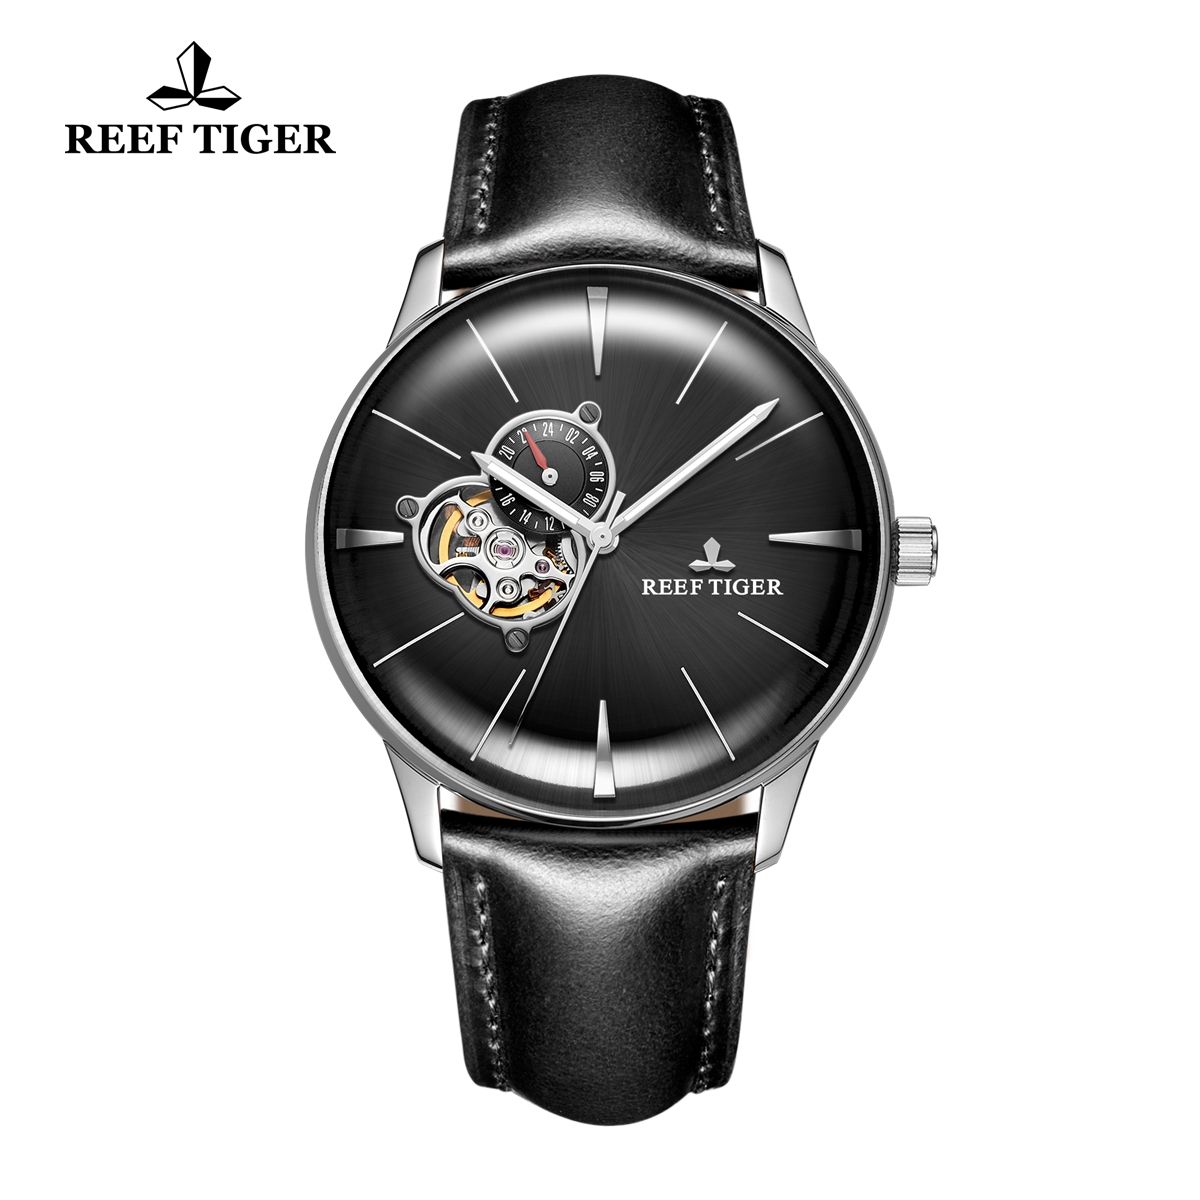 Reef Tiger Classic Glory Men's Automatic Watch Leather Strap Black Dial Watch RGA8239-YBBH